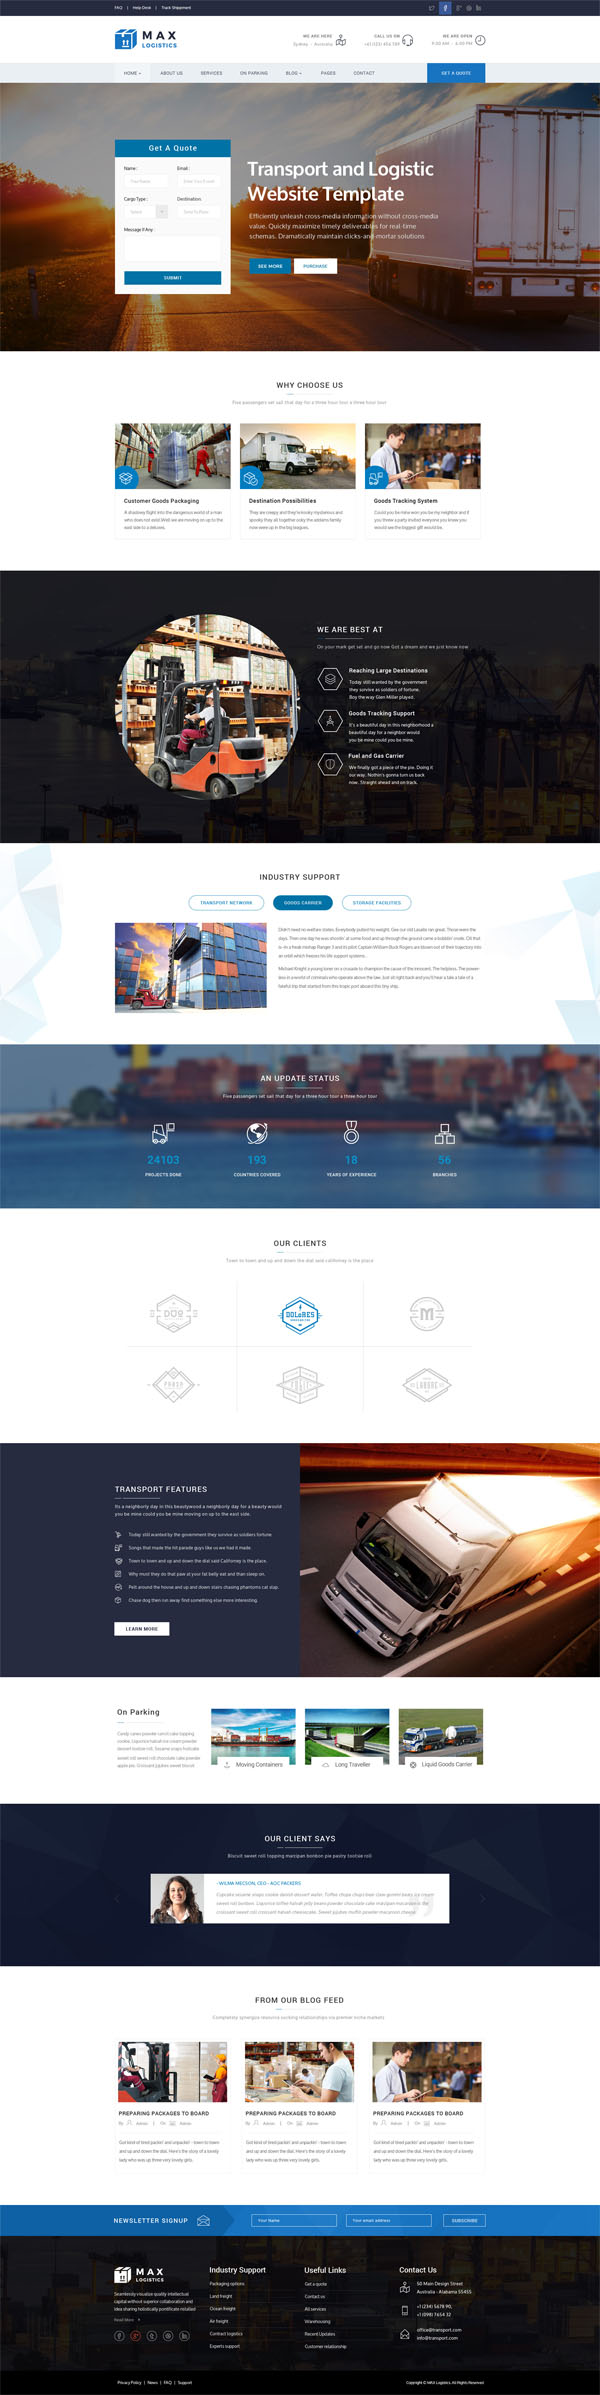 Max Logistics - Transport & Logistics HTML Template